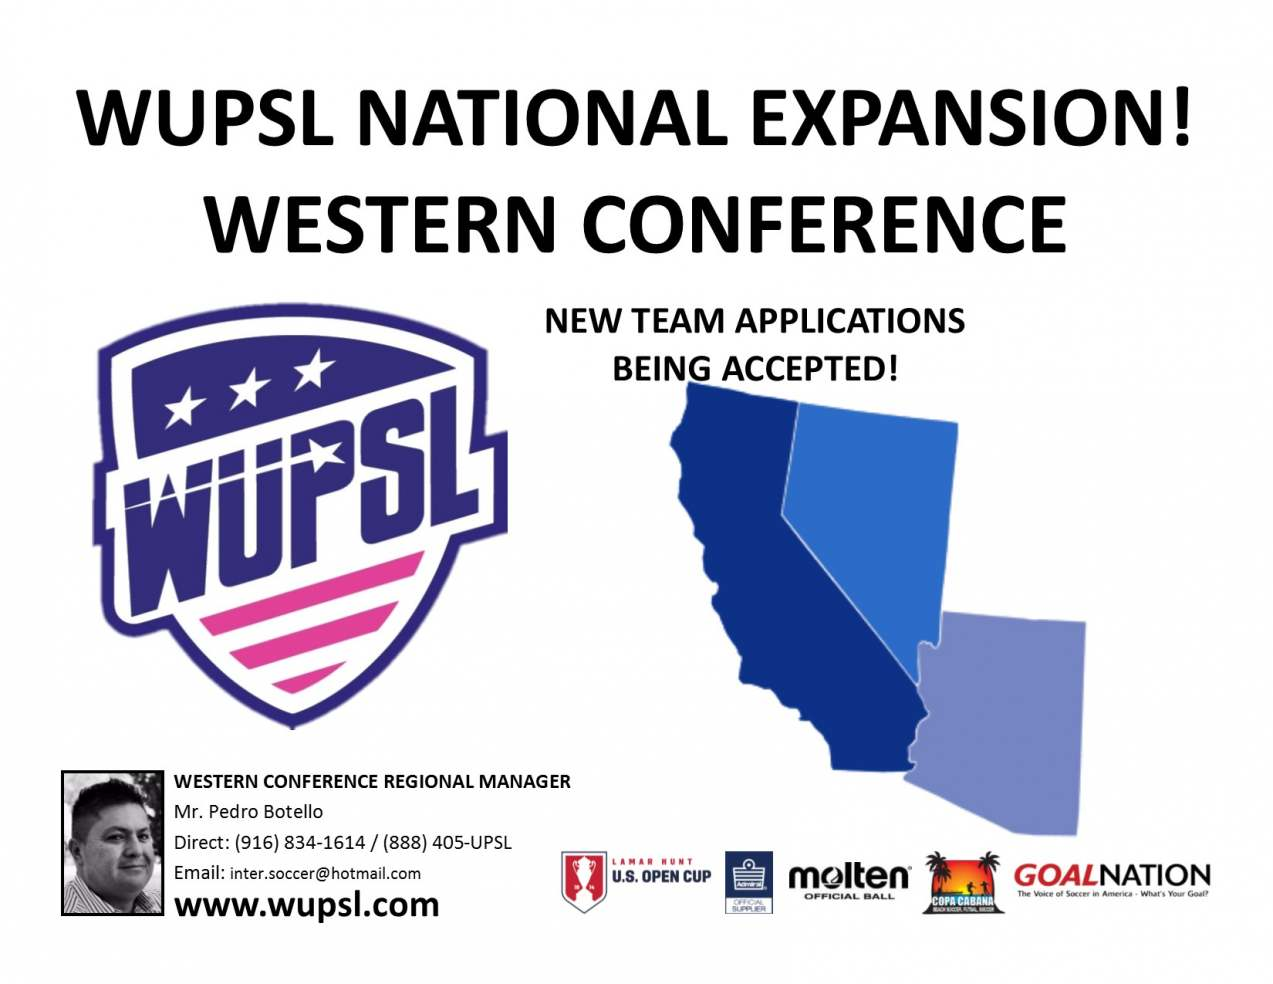 Women's United Premier Soccer League Names Western Conference Regional Manager